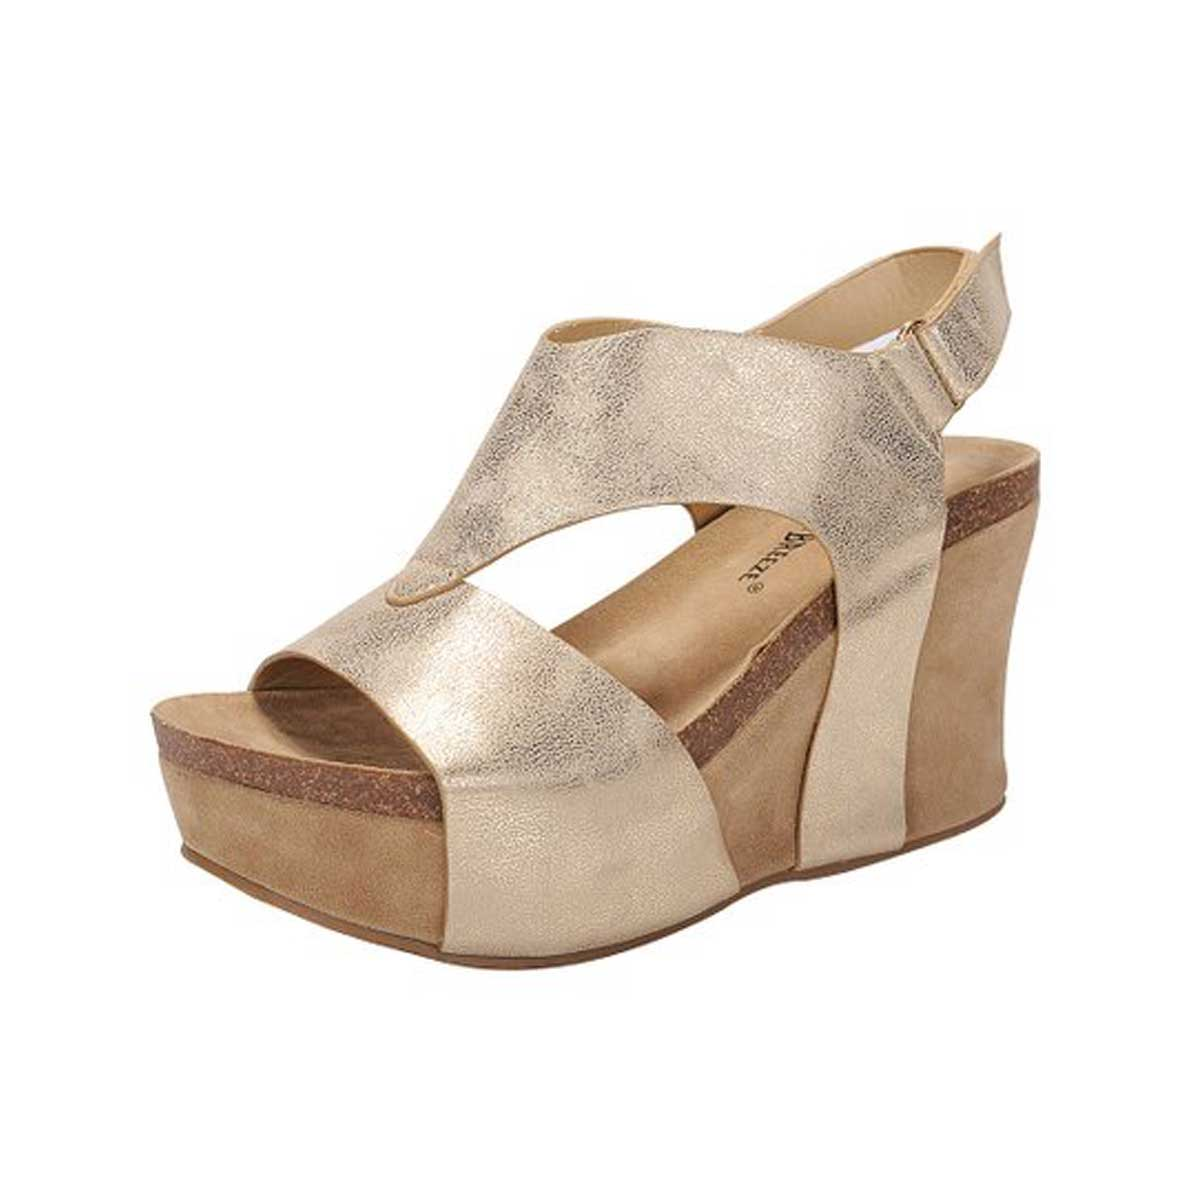 Nature Breeze V-Shaped Strap Platform Wedge Shoes